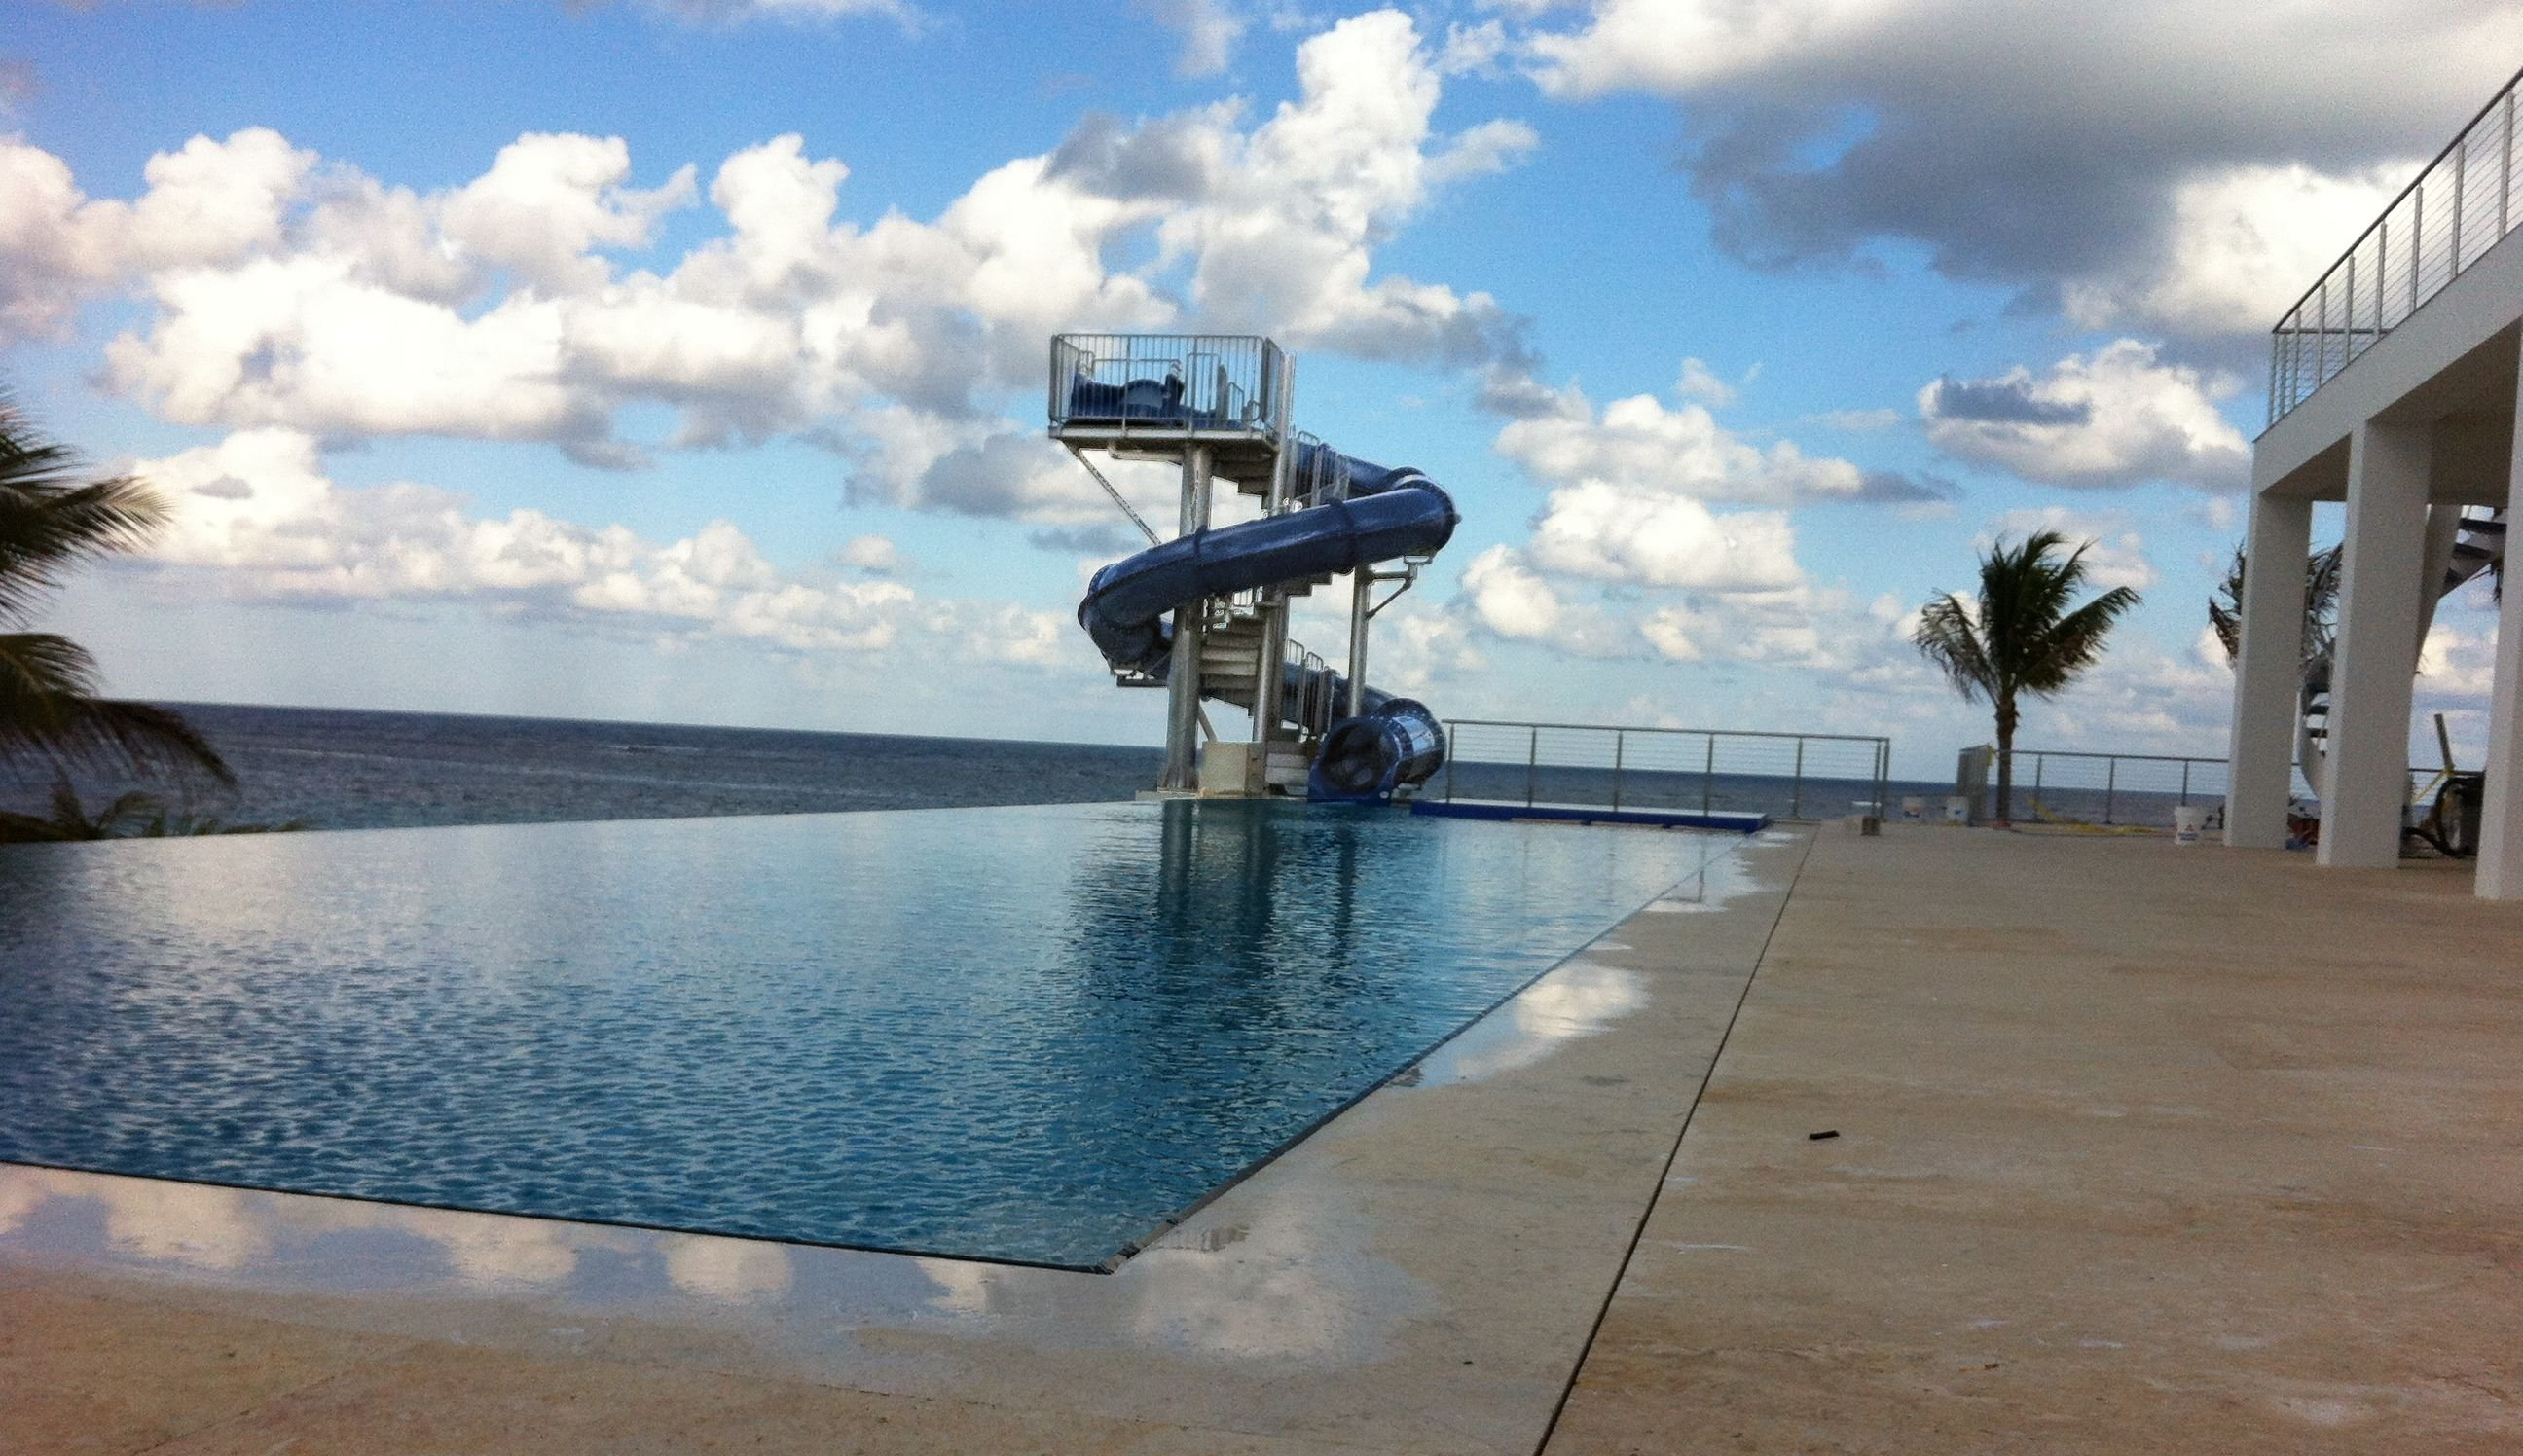 Aquatics by Westwind is a custom design company specializing in designing, developing and manufacturing water slides, water parks, and other aquatic equipments such as Polin waterslides, water slides, waterpark, water parks, pool, aquatics, campgrounds, spray parks, sprayparks in hotels and resorts.